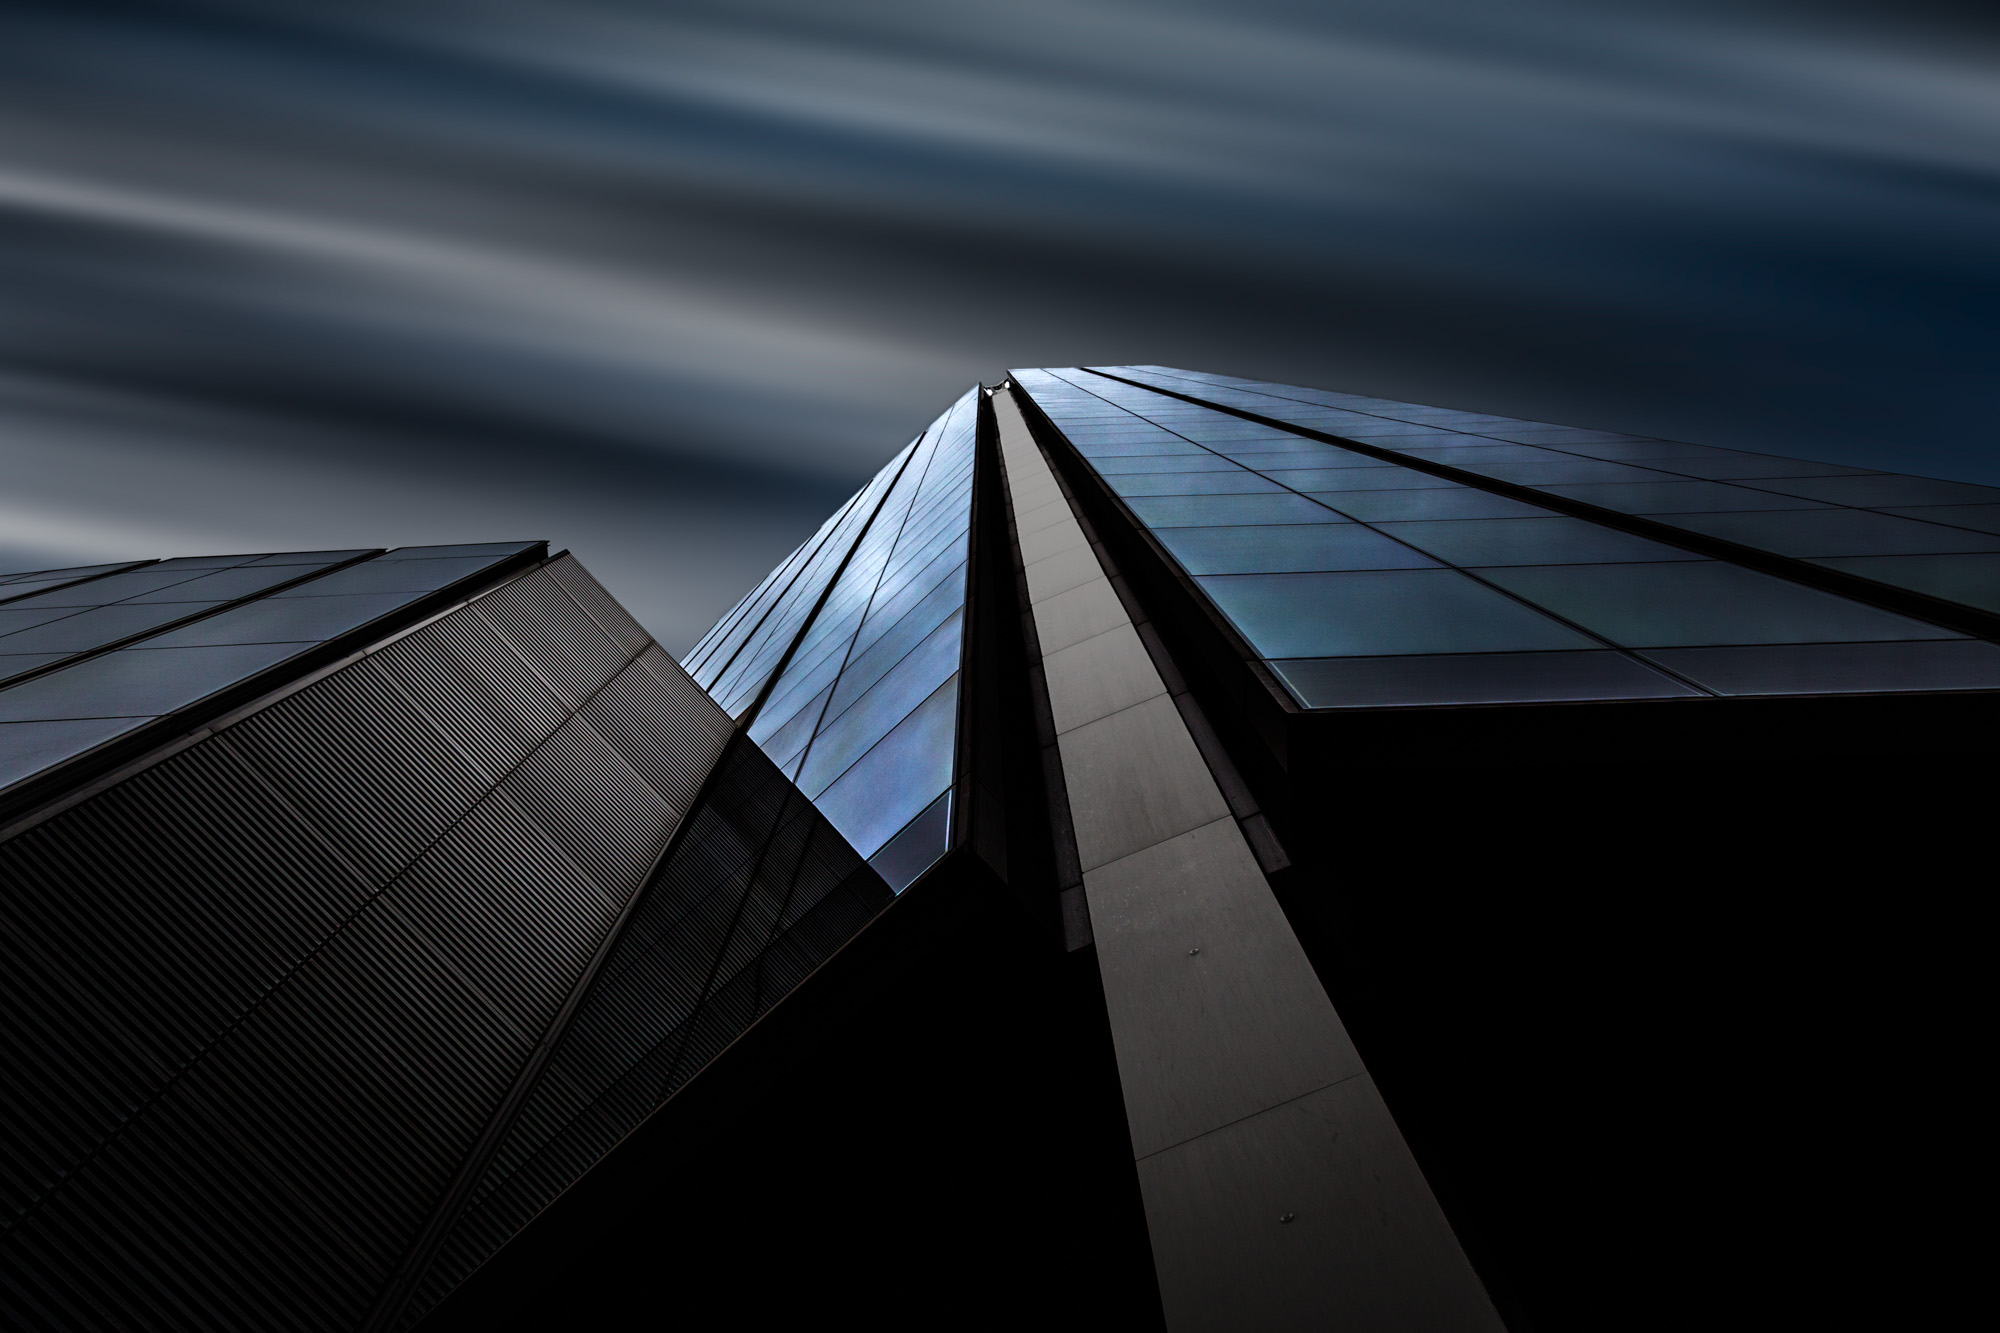 long exposure photograph of blue glass modern skyscraper architecture